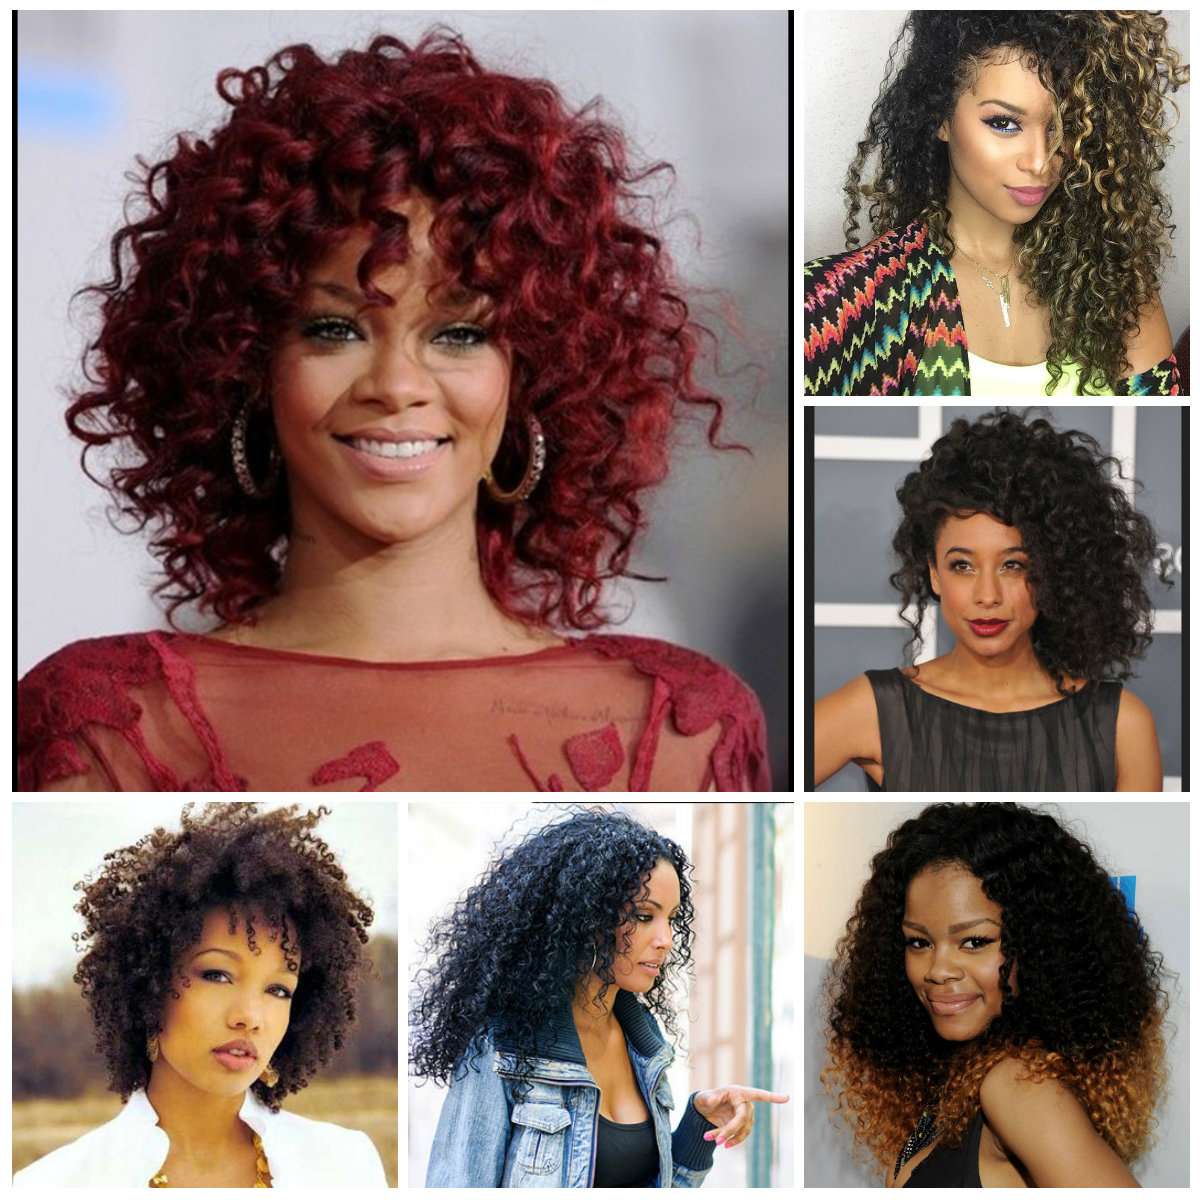 Big Natural Curly Hairstyles For Black Women (View 8 of 20)